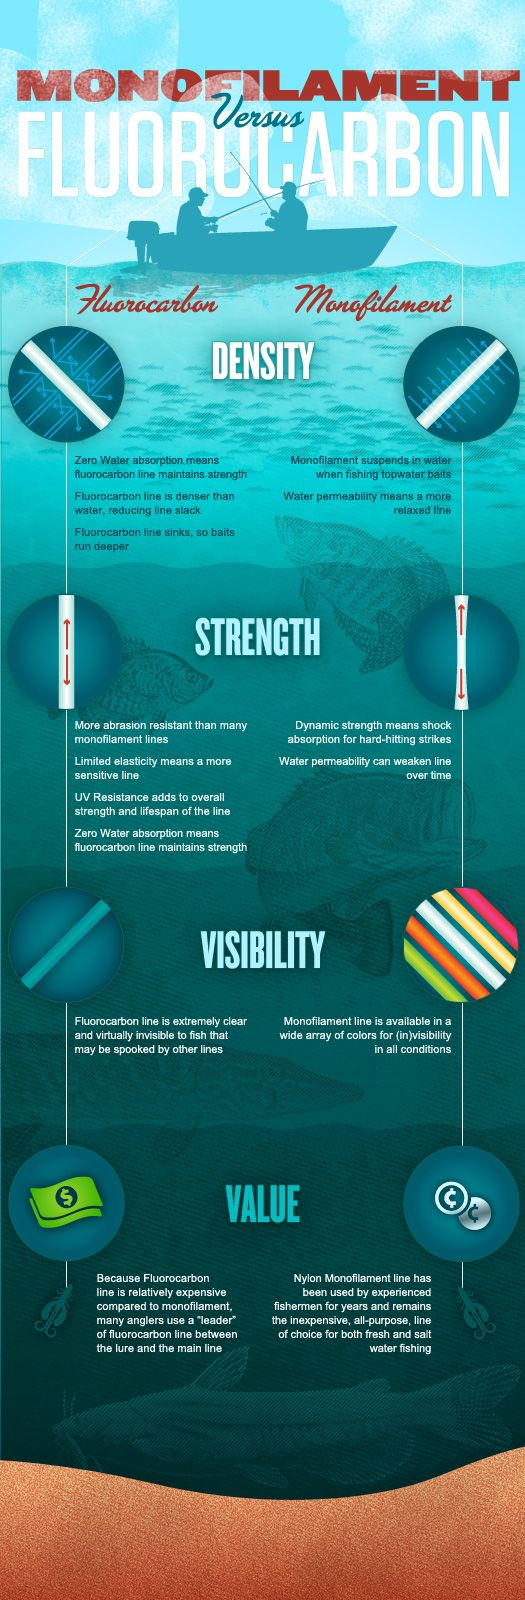 Monofilament vs fluorocarbon infographic for Best fluorocarbon fishing line